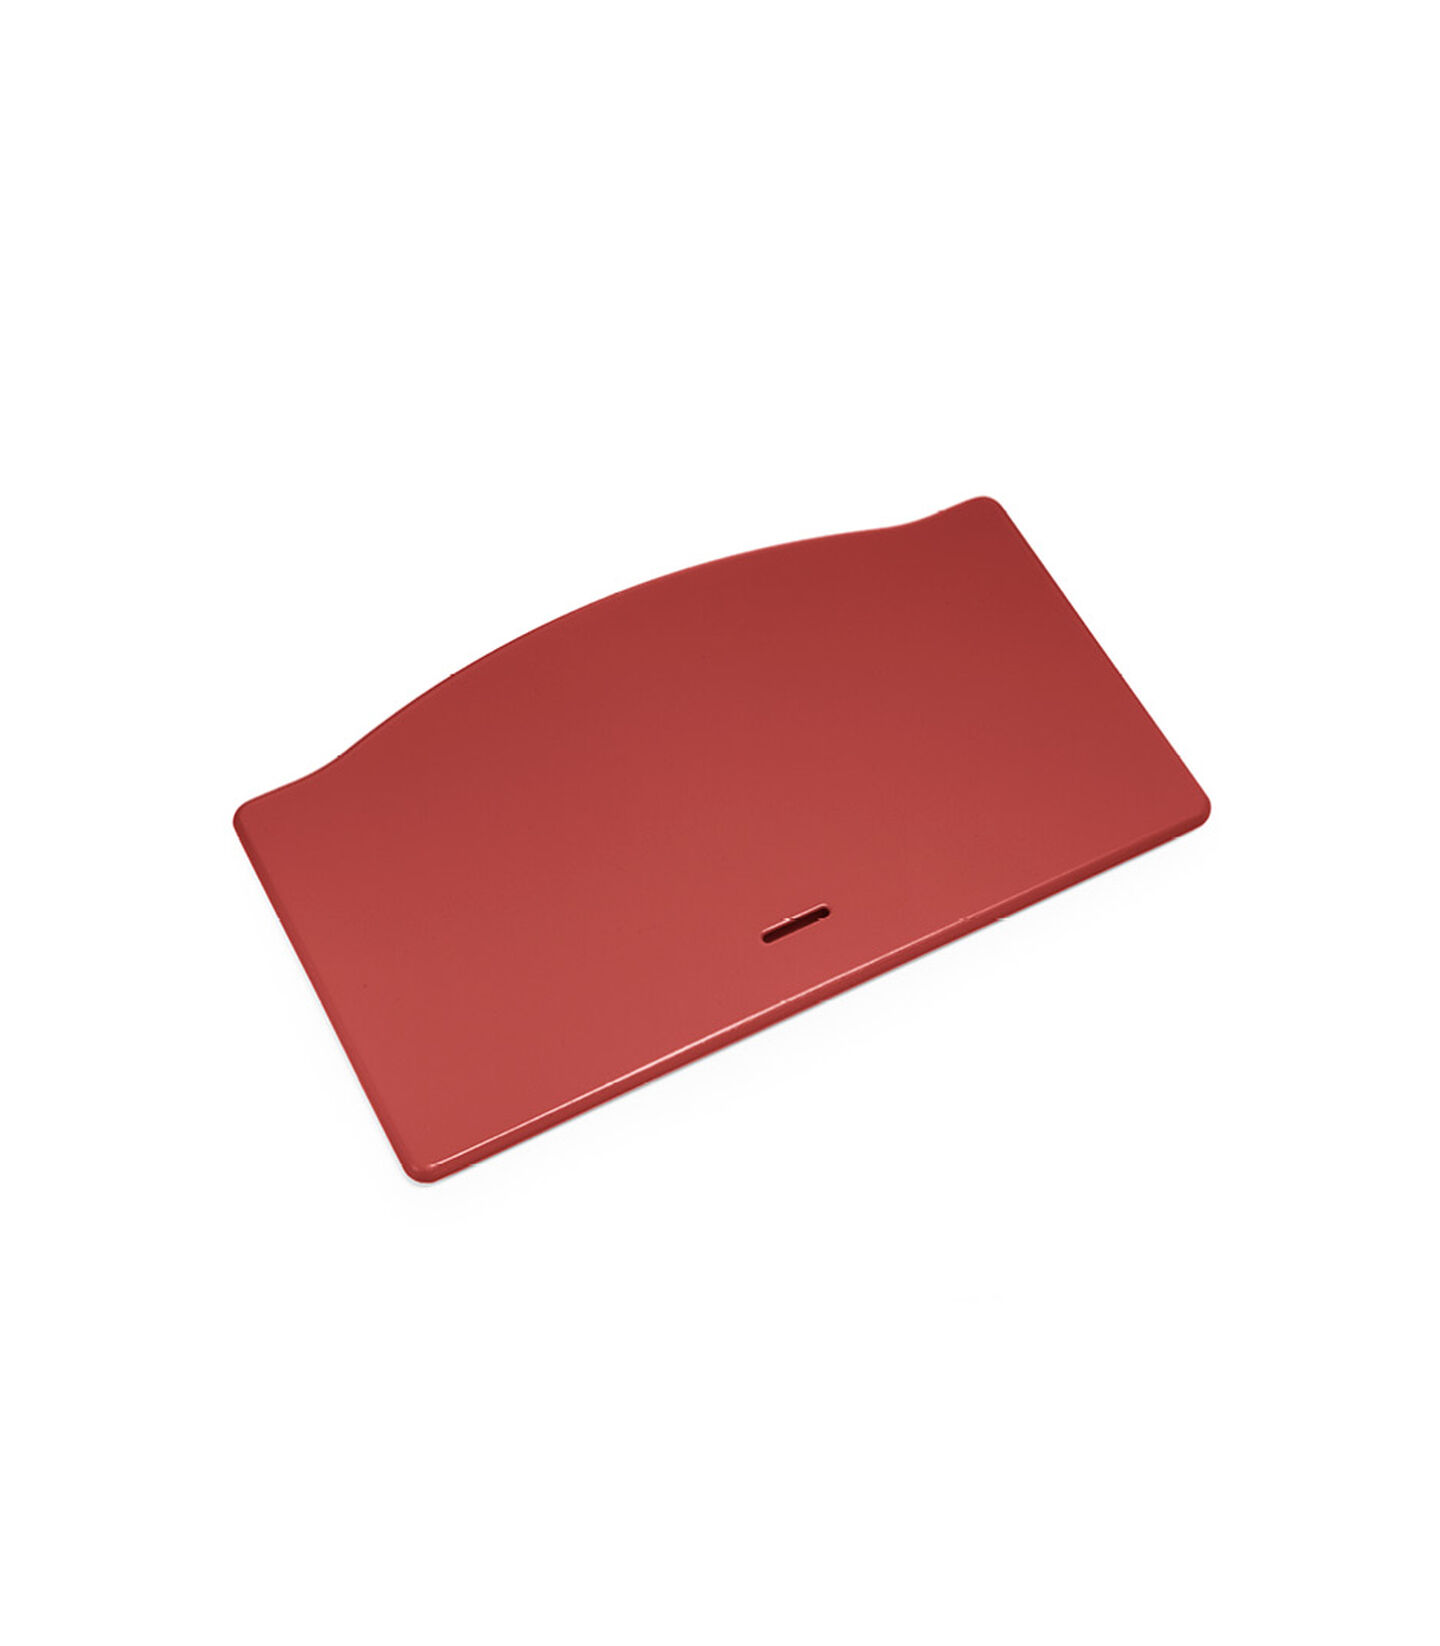 Tripp Trapp® sitteplate Warm Red, Warm Red, mainview view 1